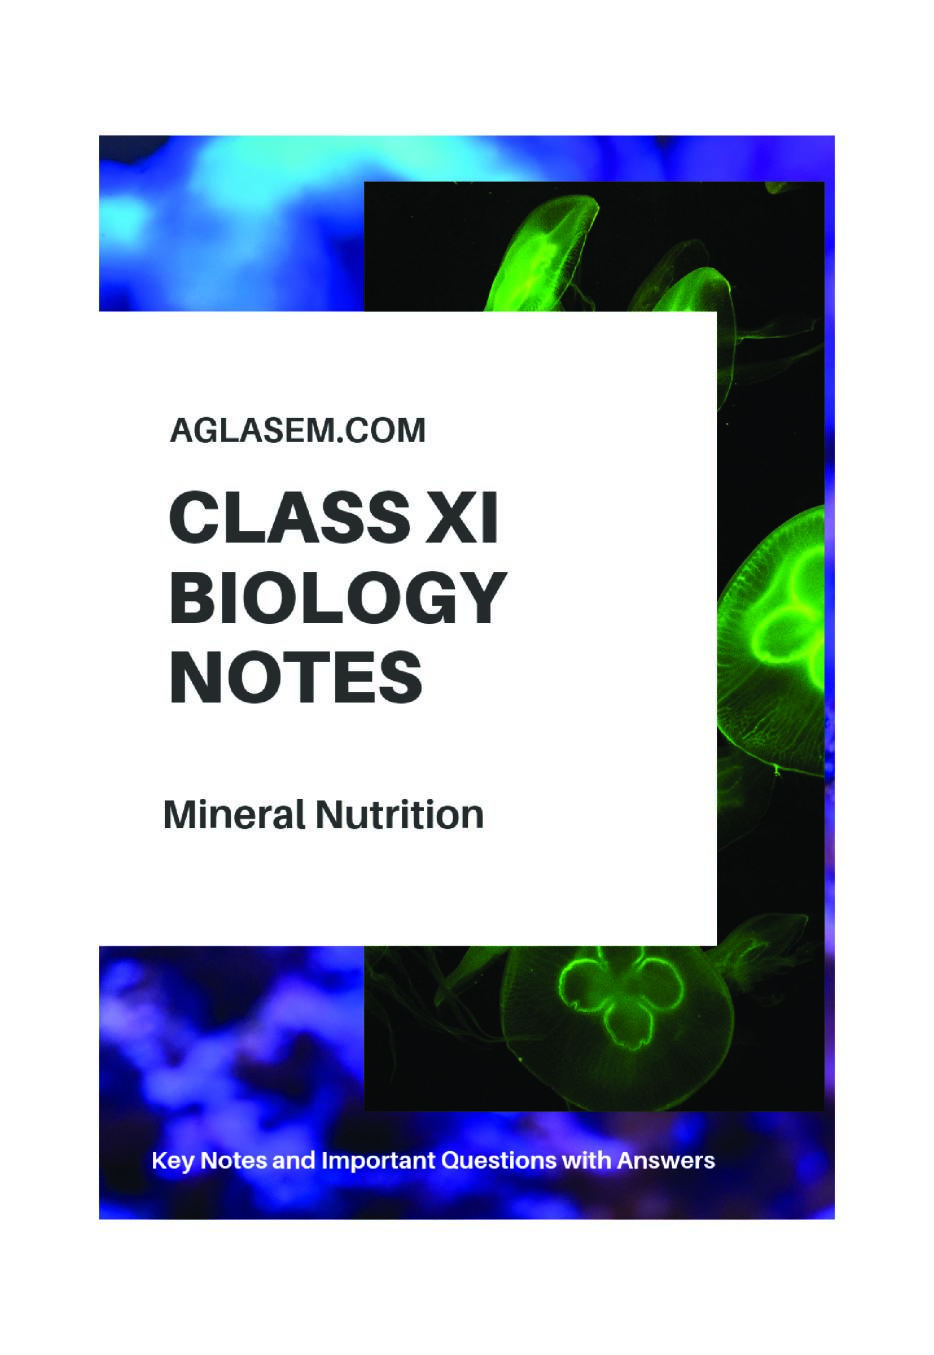 Class 11 Biology Notes for Mineral Nutrition